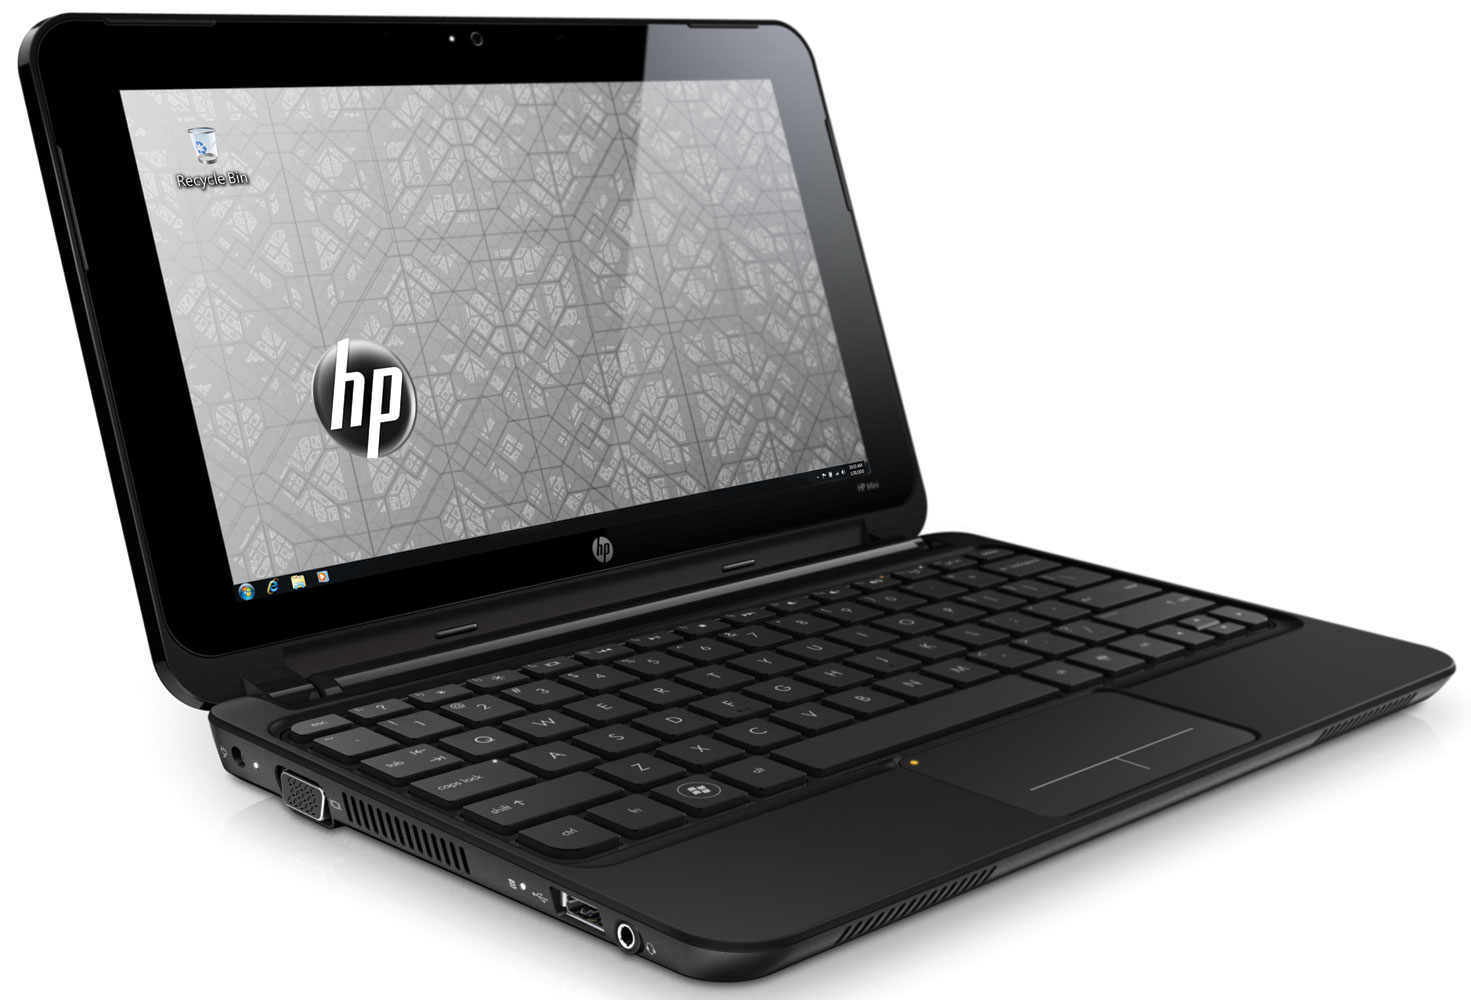 HP MINI 110-3118CL NOTEBOOK DRIVER DOWNLOAD (2019)